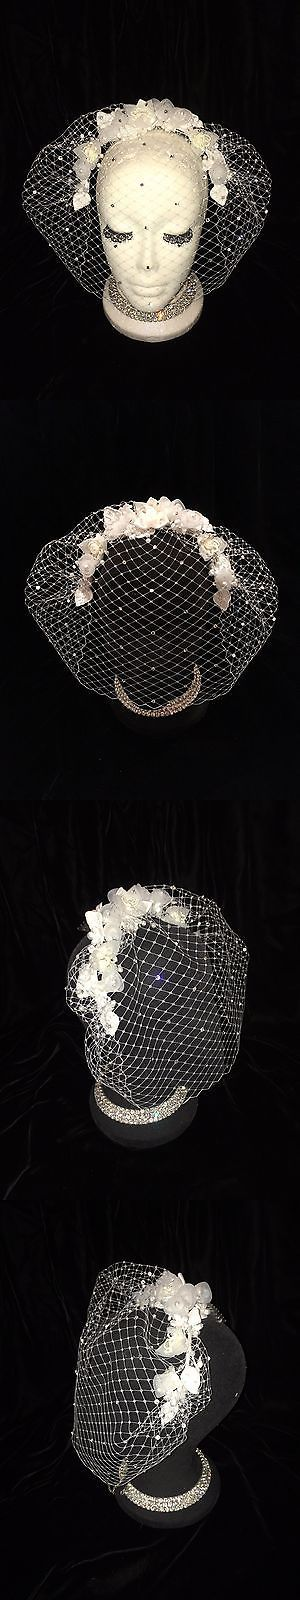 Fascinators and Headpieces 168998: White Ivory Flower Crystal Birdcage Veil Hair Comb. Bride Fascinator Vintage -> BUY IT NOW ONLY: $50 on eBay!